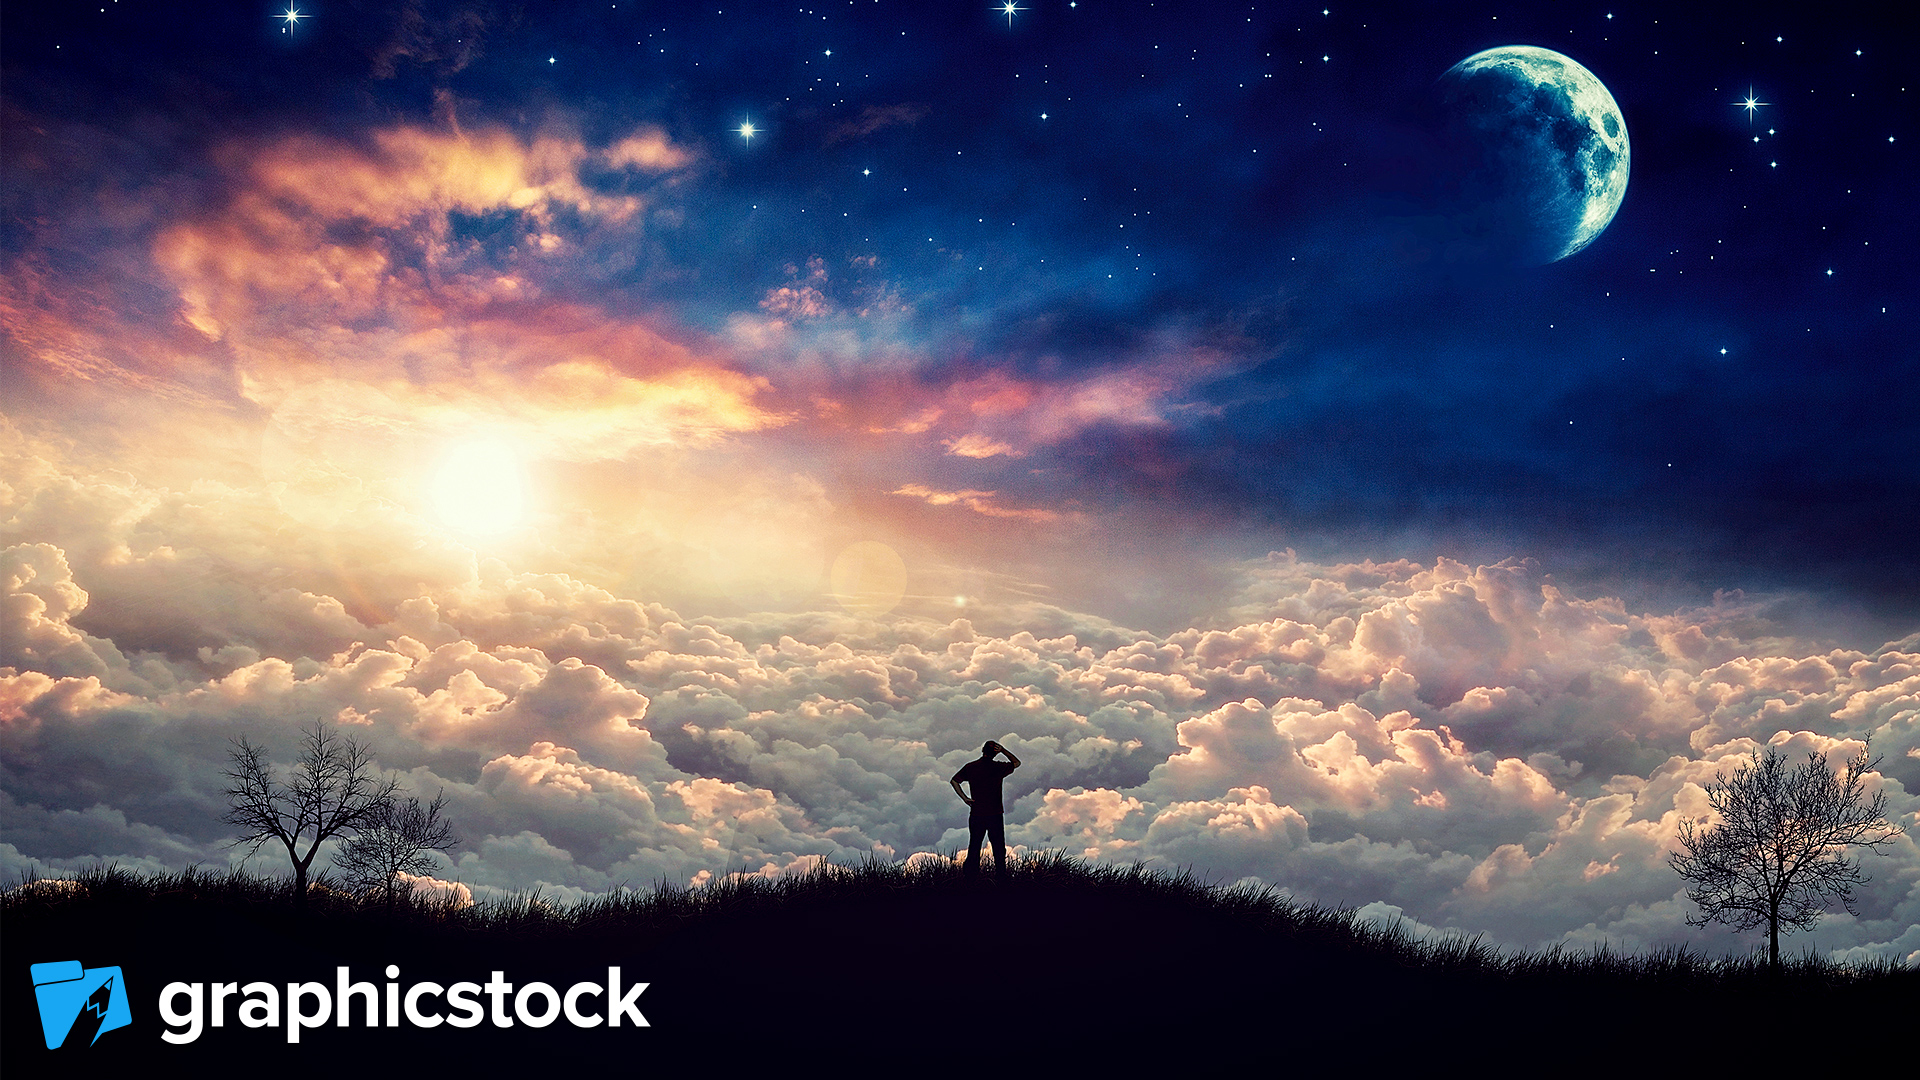 Graphicstock space